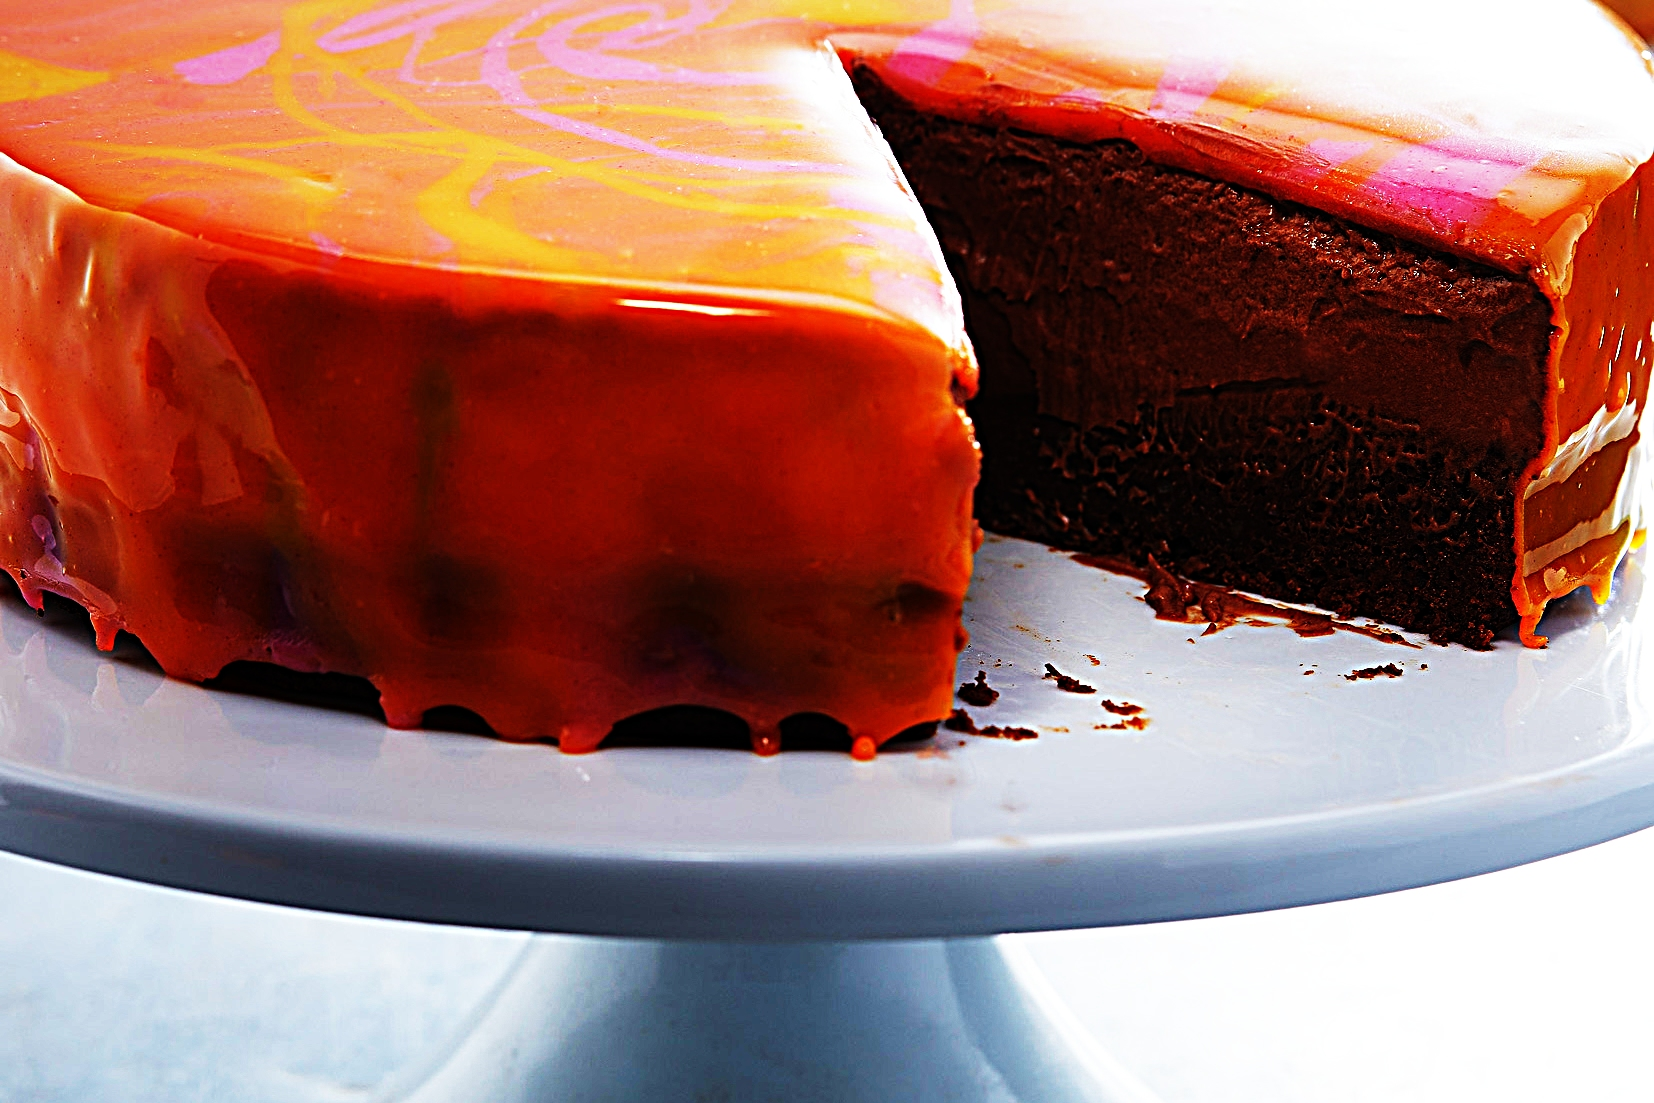 Stupid-Easy Recipe for Chocolate Mousse Mirror Glaze Cake (#1 Top-Rated)